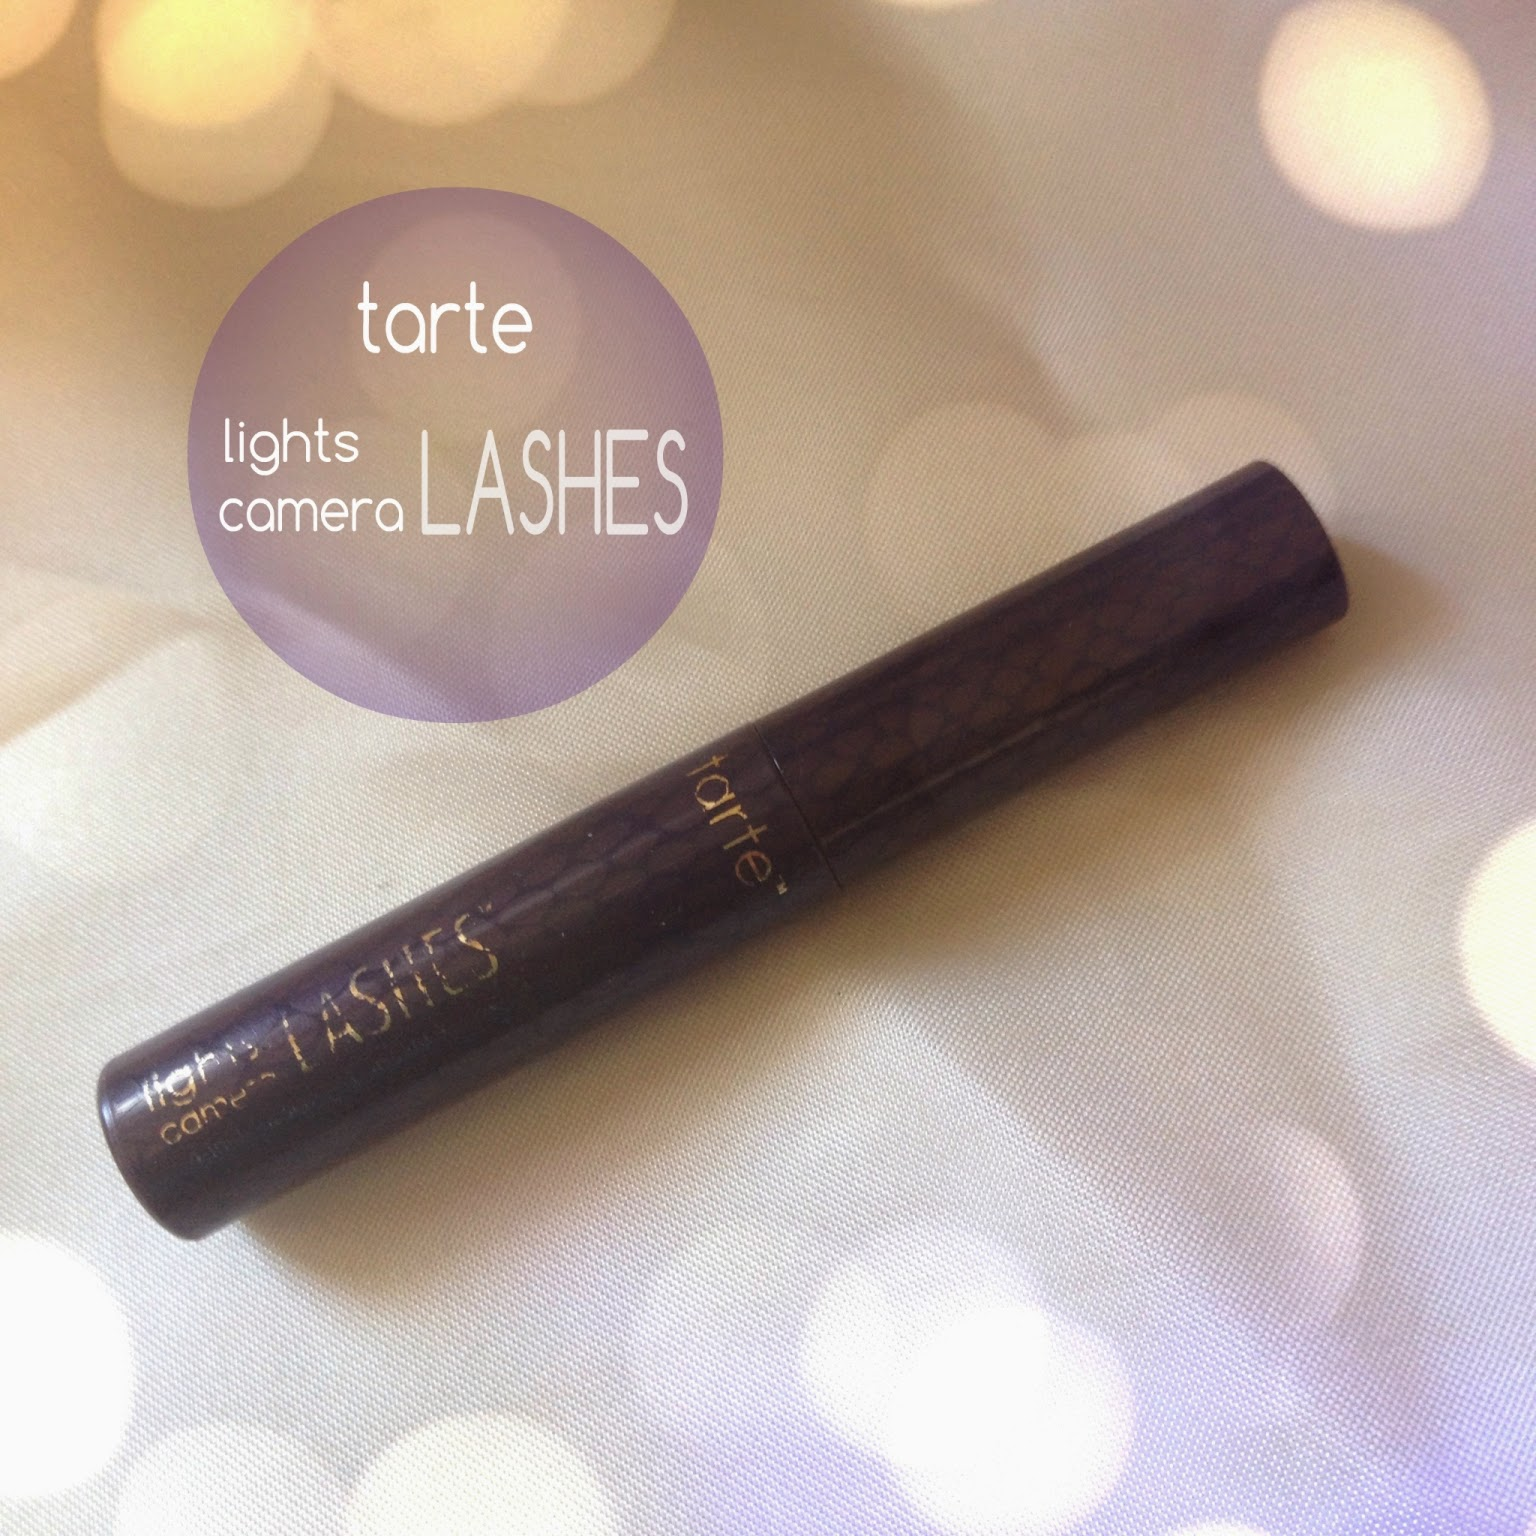 tarte lights camera lashes 4-in-1 mascara